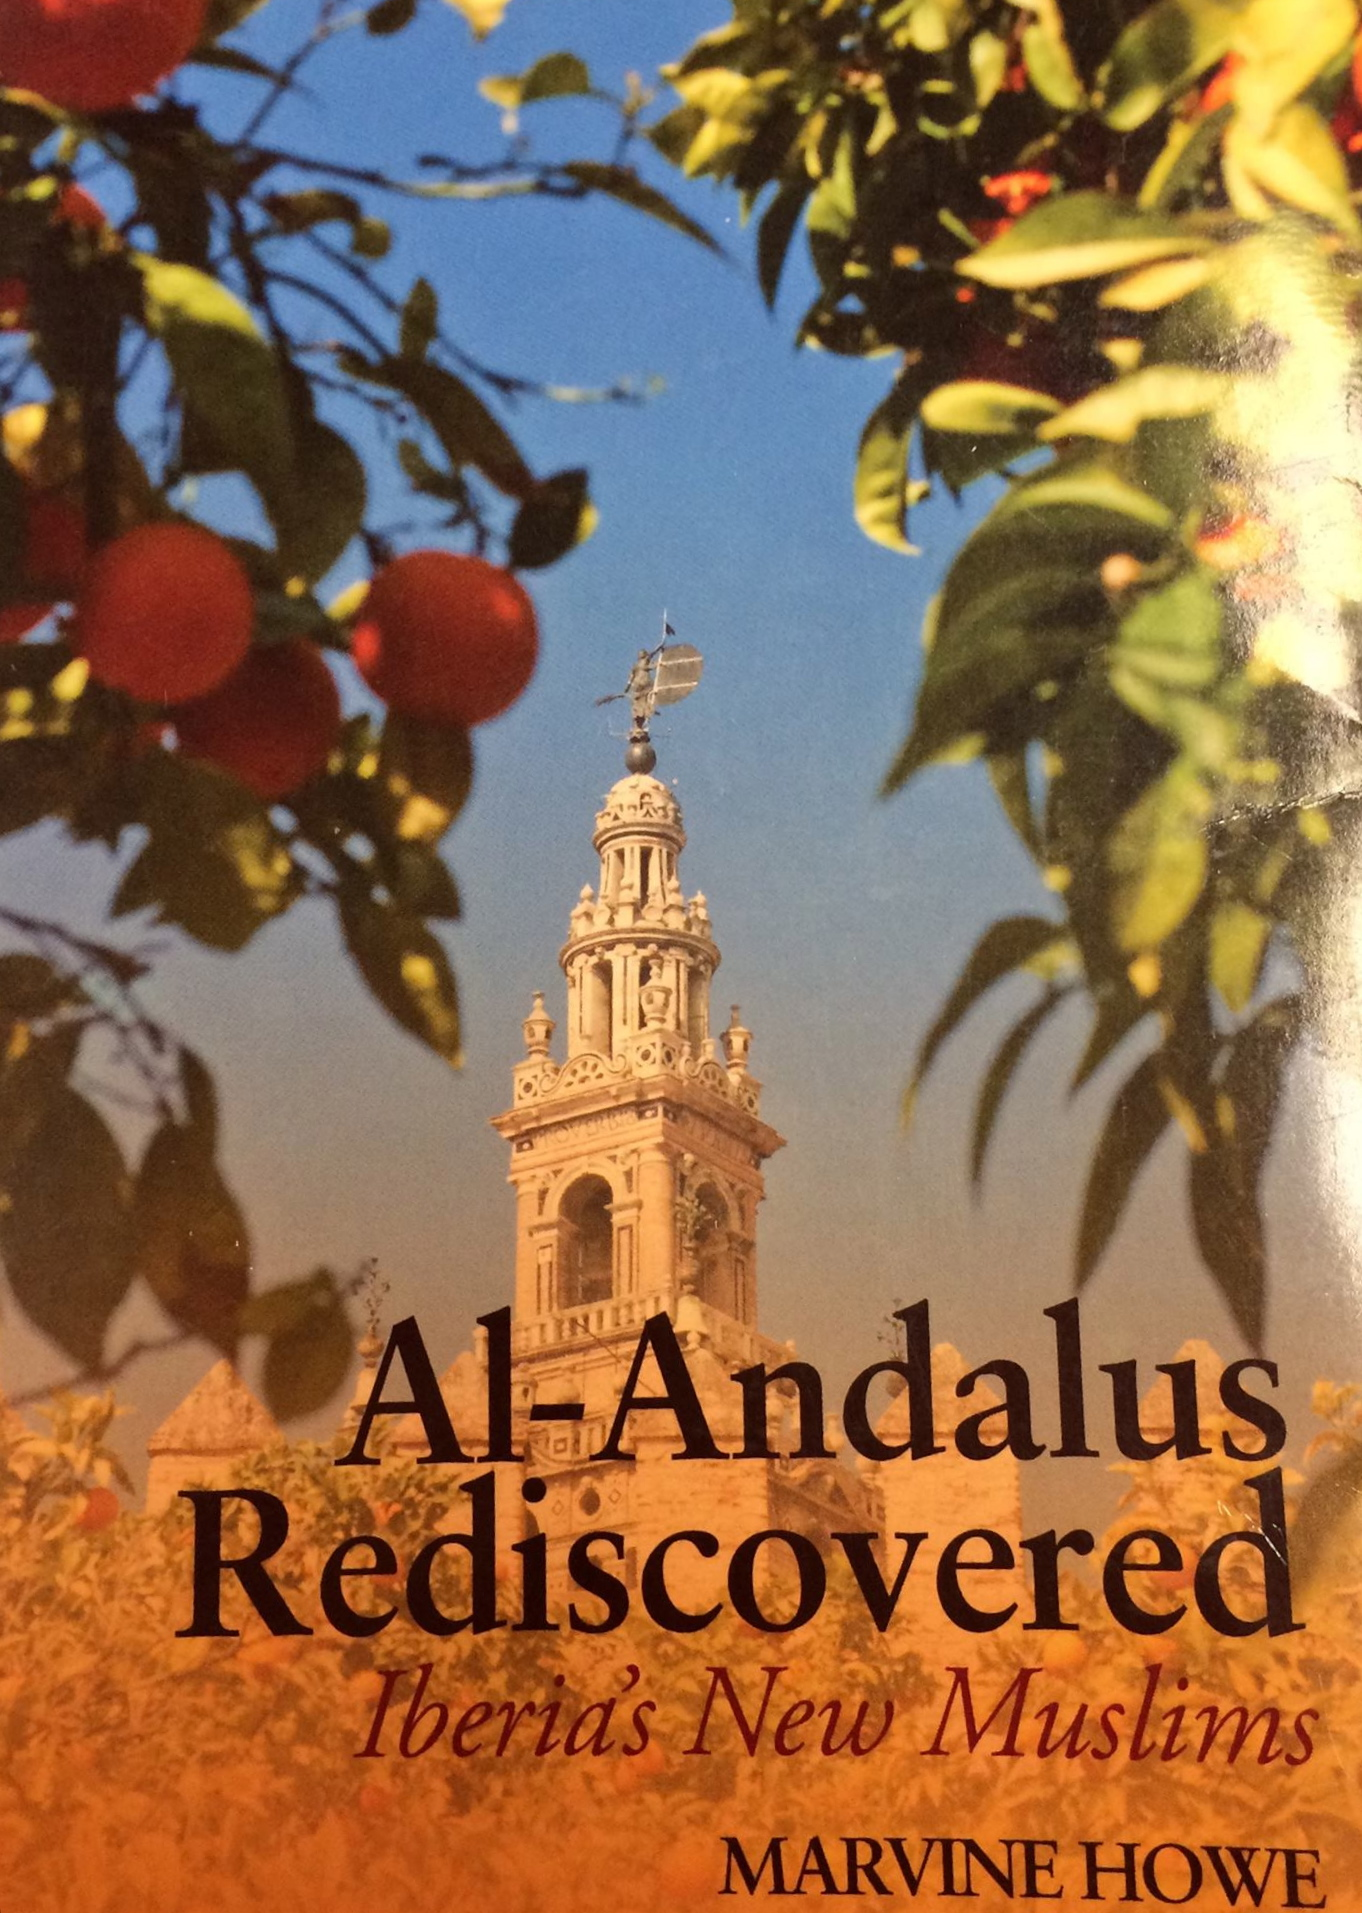 Marvine Howe. Al-Andalus Rediscovered: Iberia's New Muslims. London: Hurst, 2012. 289 pp.